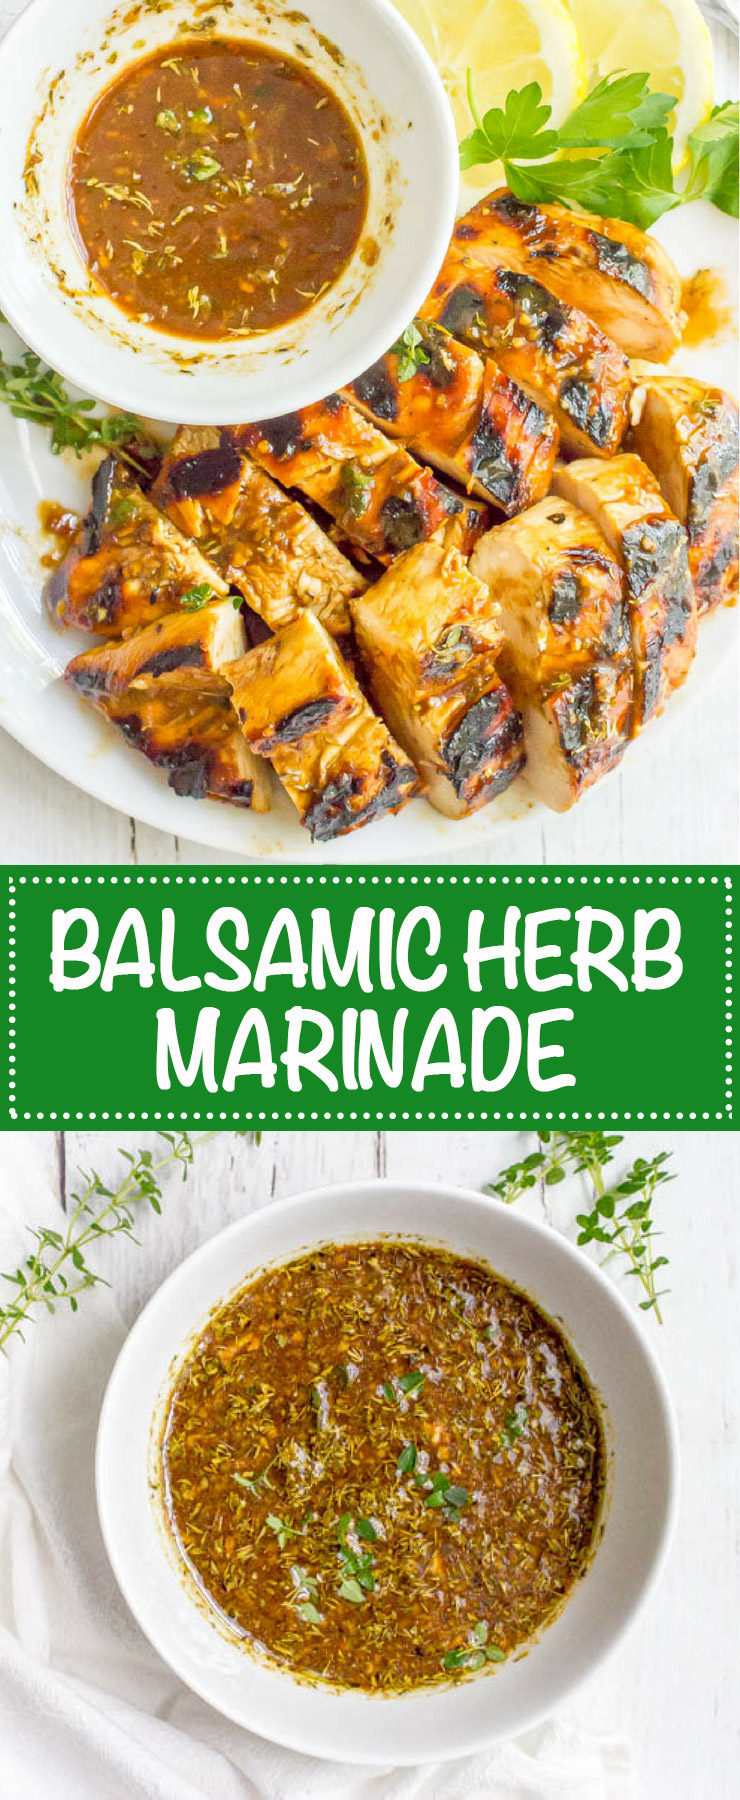 Balsamic herb grilled chicken marinade is tangy, herby and bright and perfect for a quick and easy marinade to give delicious flavor to your grilled chicken rotation. #grilledchicken #chickenmarinade | www.familyfoodonthetable.com